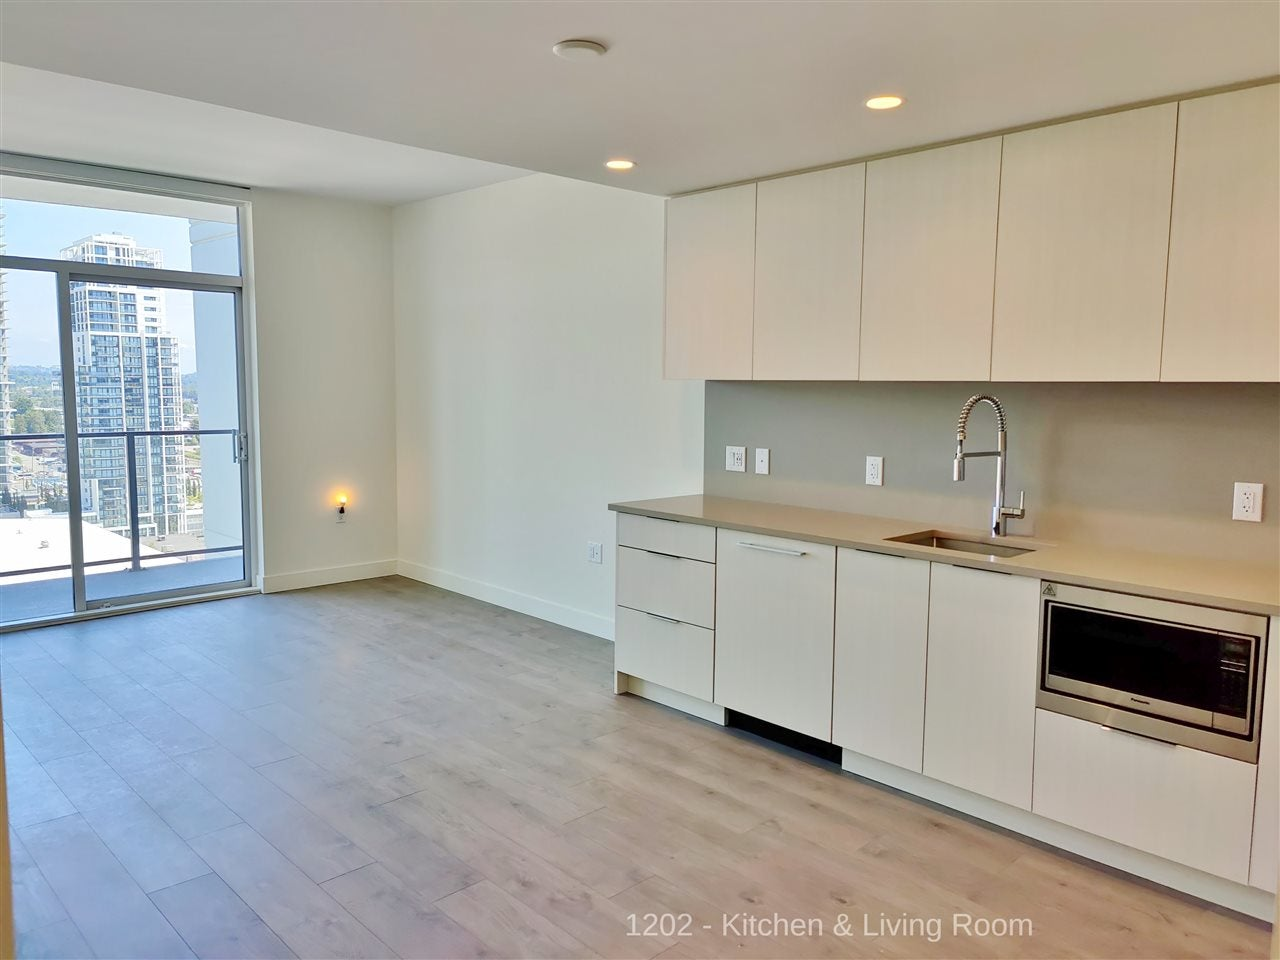 1202 4465 JUNEAU STREET - Brentwood Park Apartment/Condo for sale, 1 Bedroom (R2470011) - #8